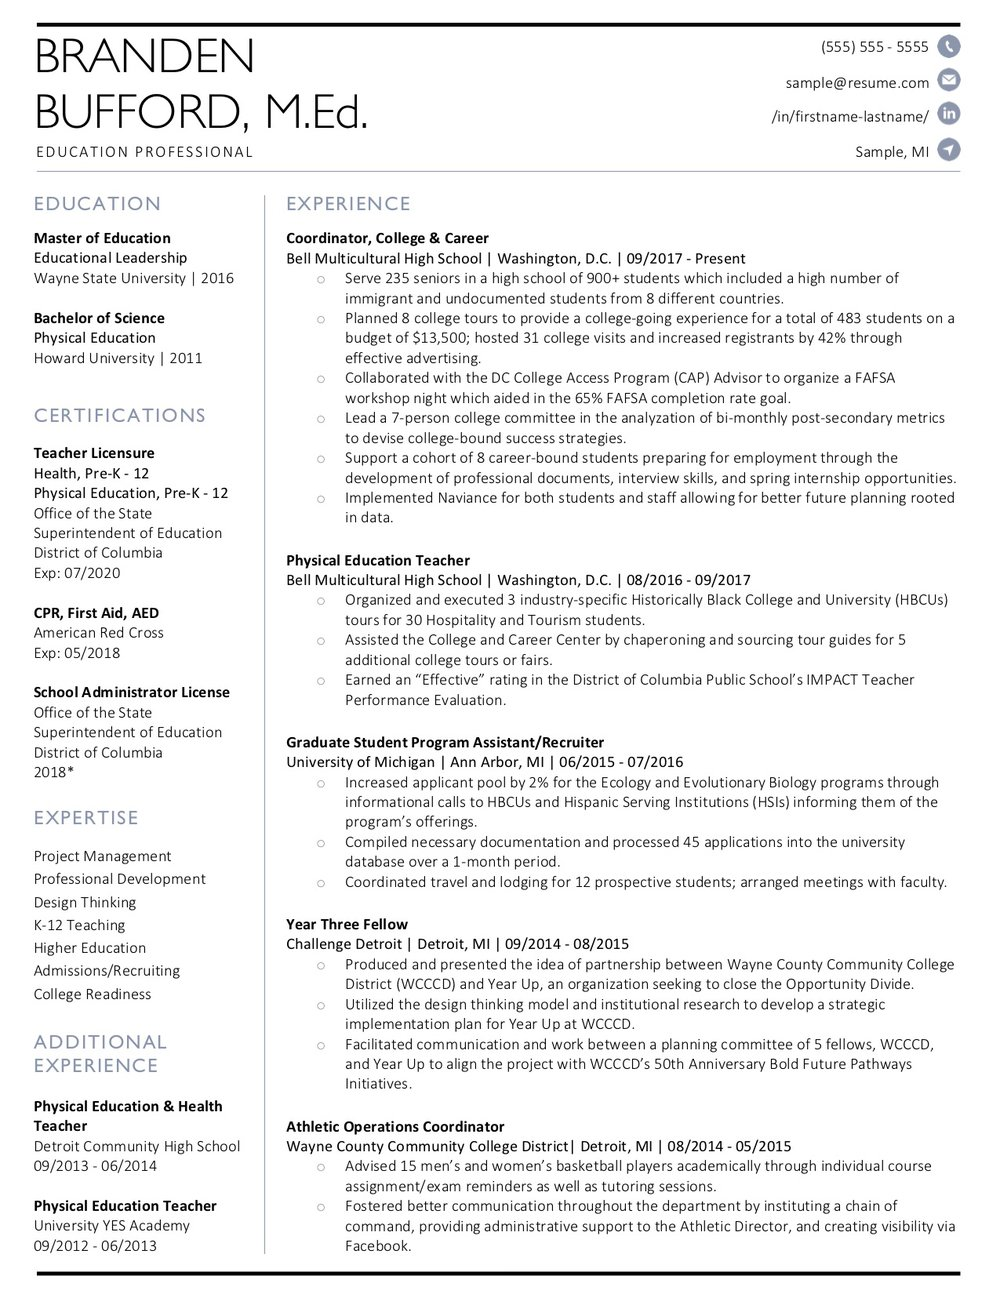 Client Resume #28. Click to enlarge.